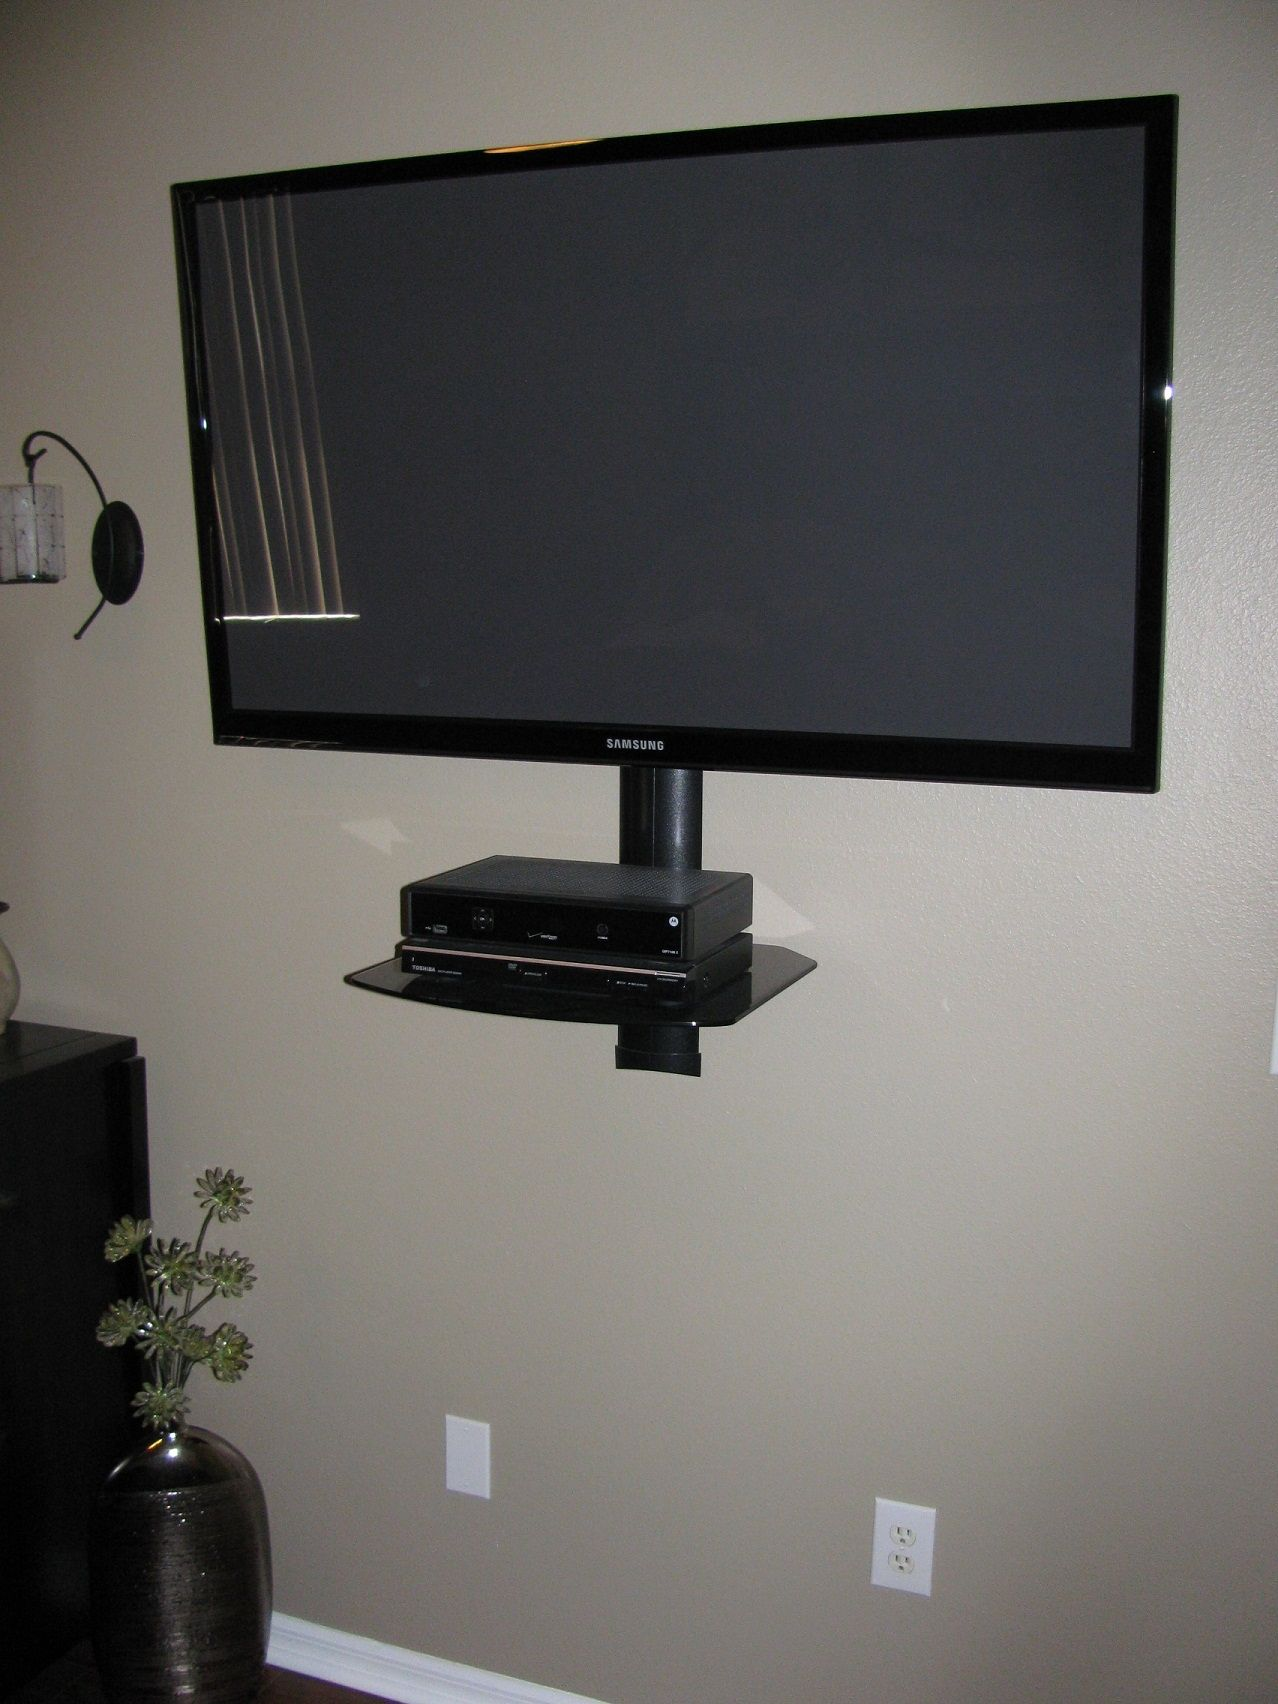 Full Motion Tv Wall Mount With Cable Box Shelf